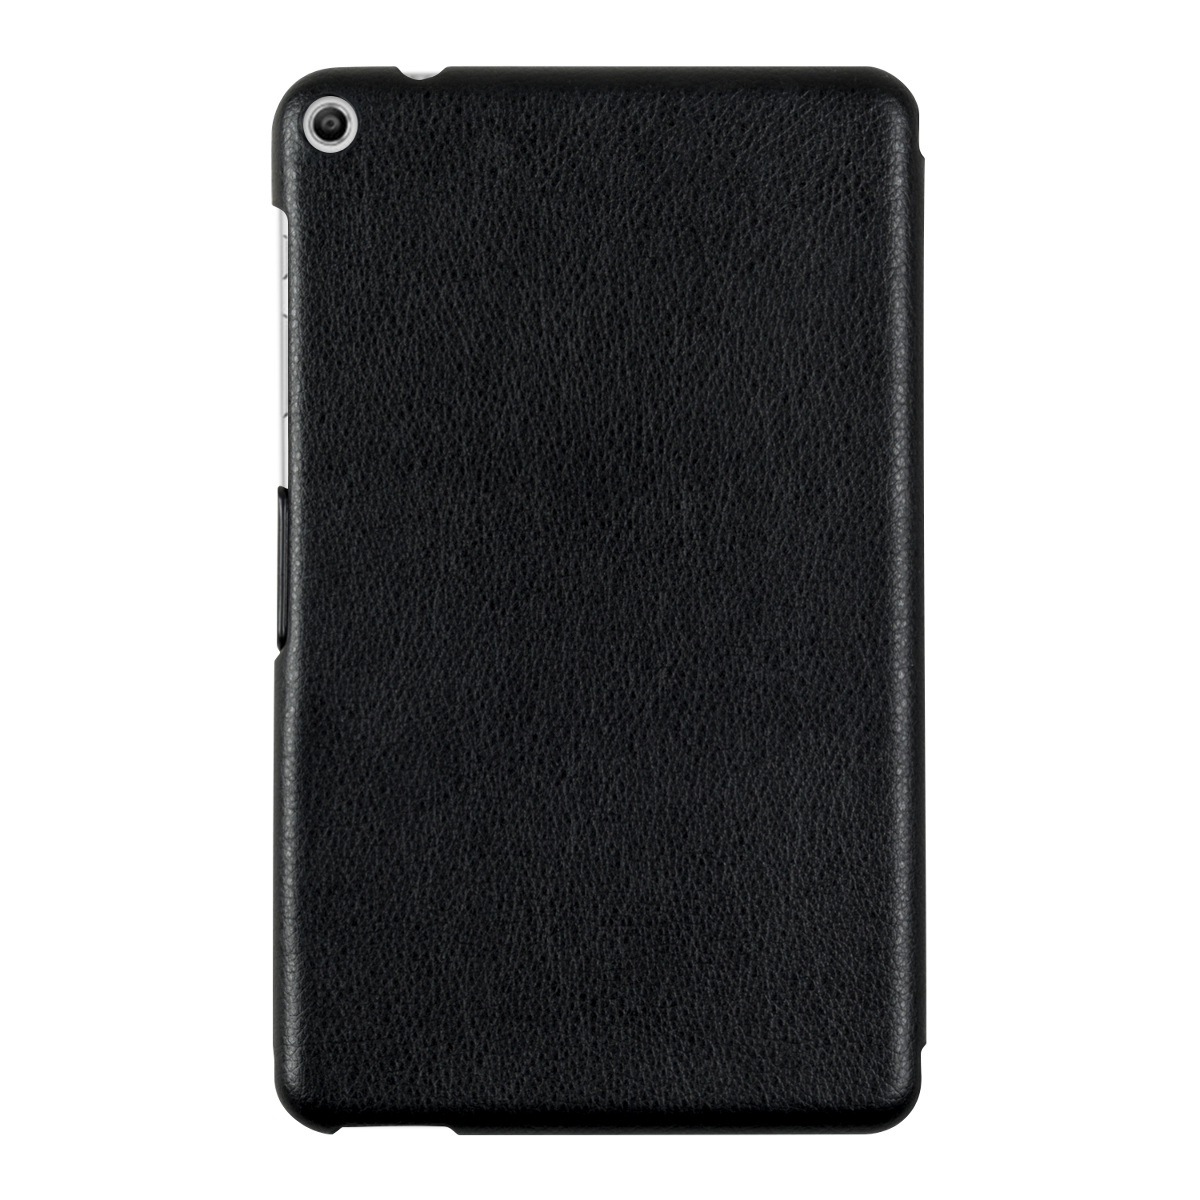 Details about ULTRA SLIM COVER FOR HUAWEI MEDIAPAD T1 8 0 BLACK HARD